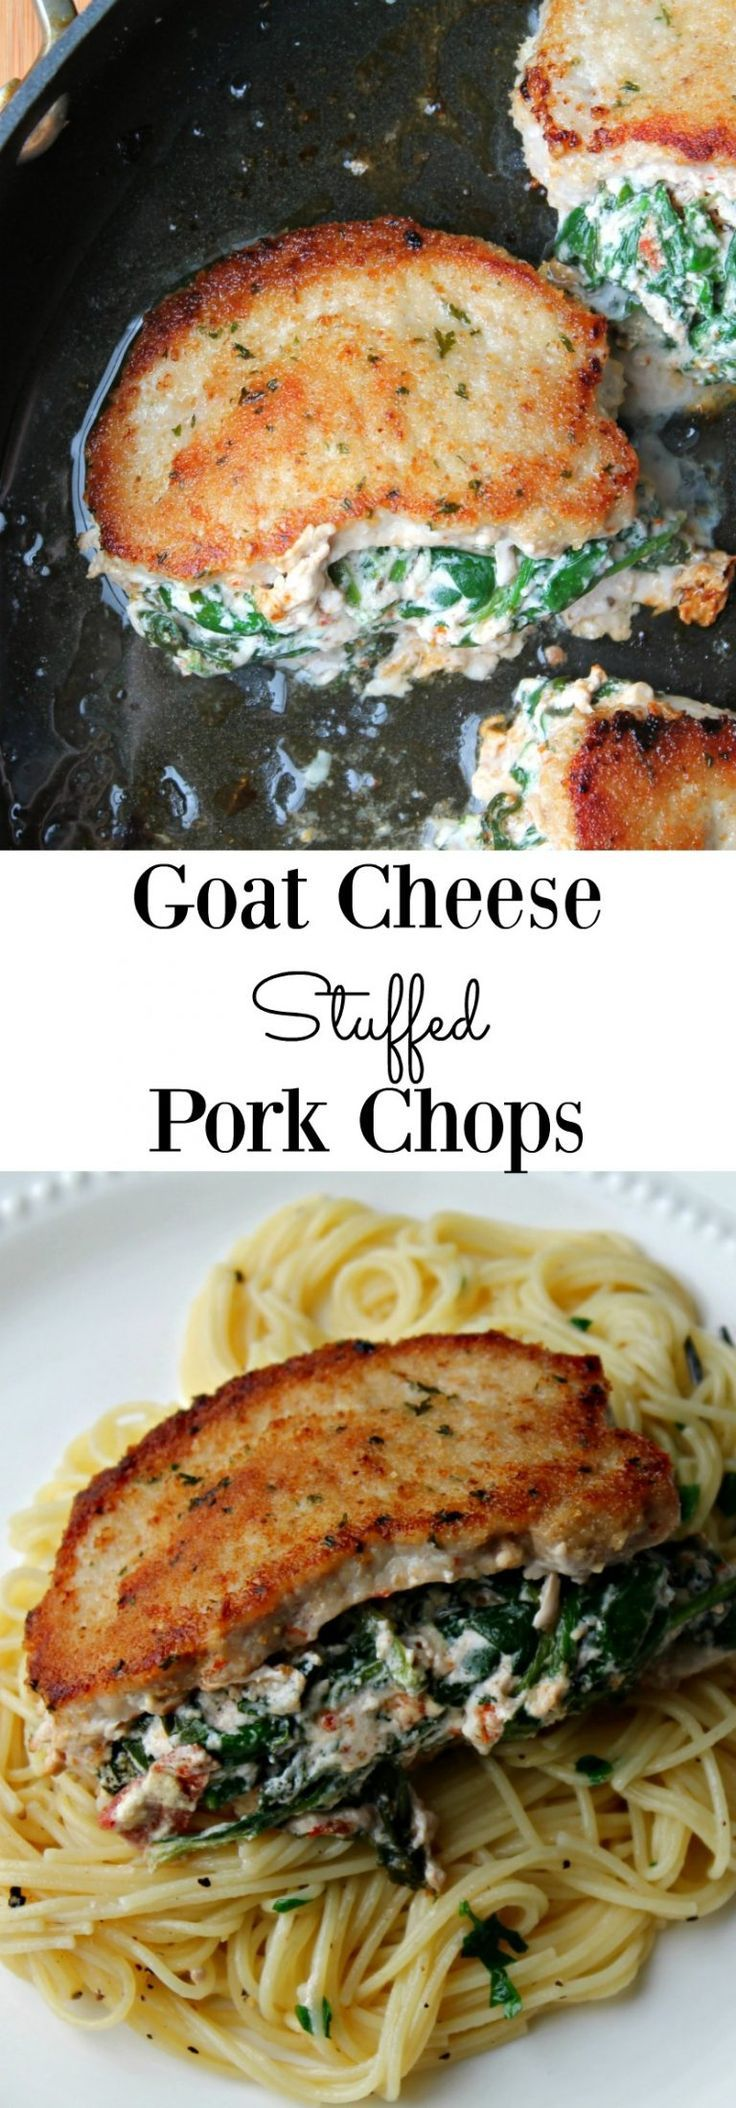 3778 best images about *Blogger Pork Recipes* on Pinterest ...